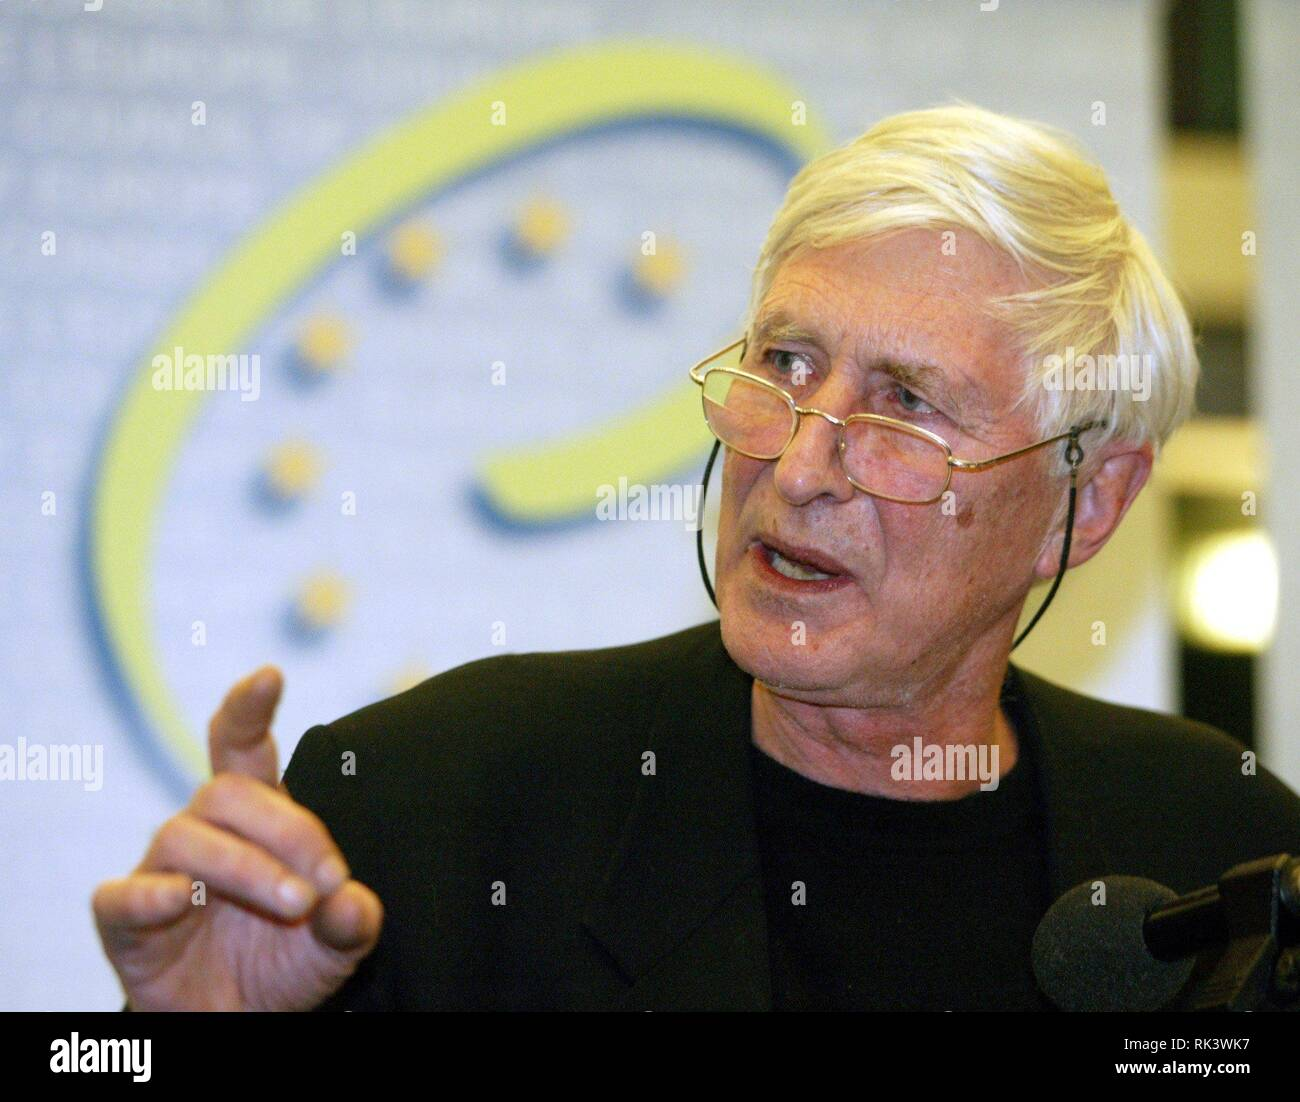 Strasbourg, France  28th Feb, 2003  (dpa) - Tomi Ungerer, French